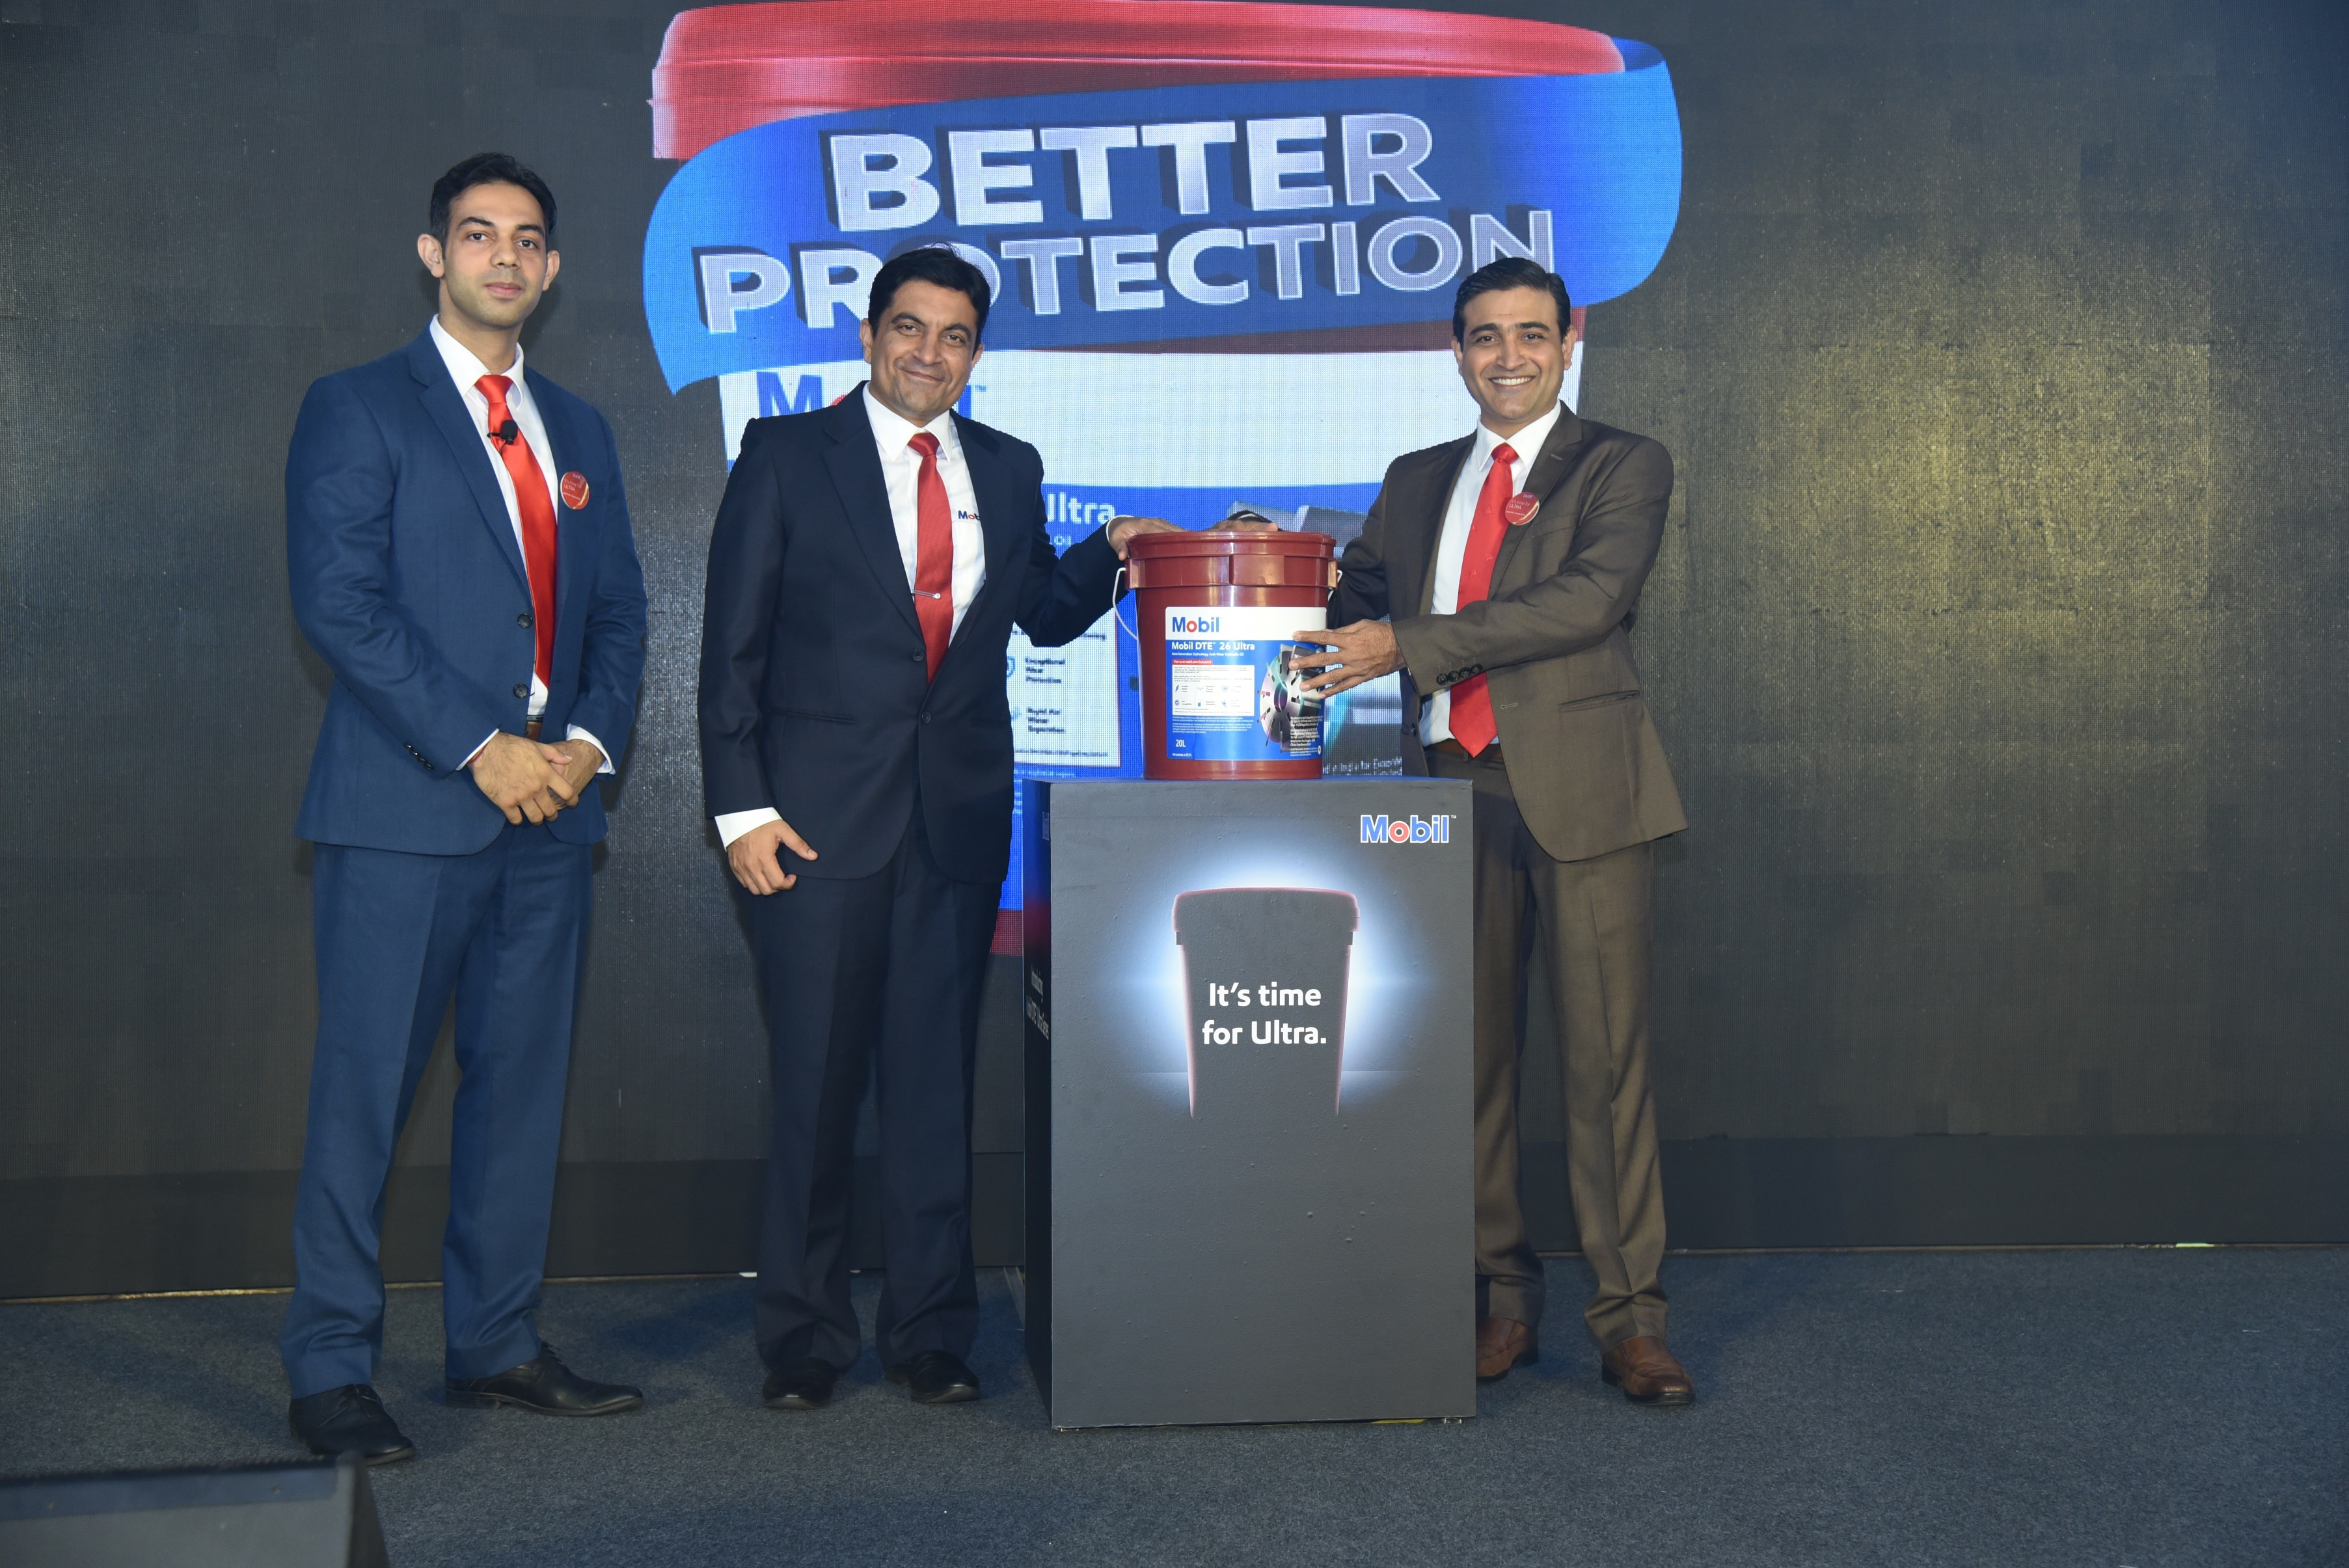 Sumit Rana, South AP Offer Development Manager, Ankush Khanna, South AP Commercial Brand Manager and Shankar Karnik, General Manager - Industrial Lubricants, during the launch of Mobil DTE™  20 Ultra Series – a technologically advanced series of hydraulic oils by ExxonMobil Lubricants Private Limited.